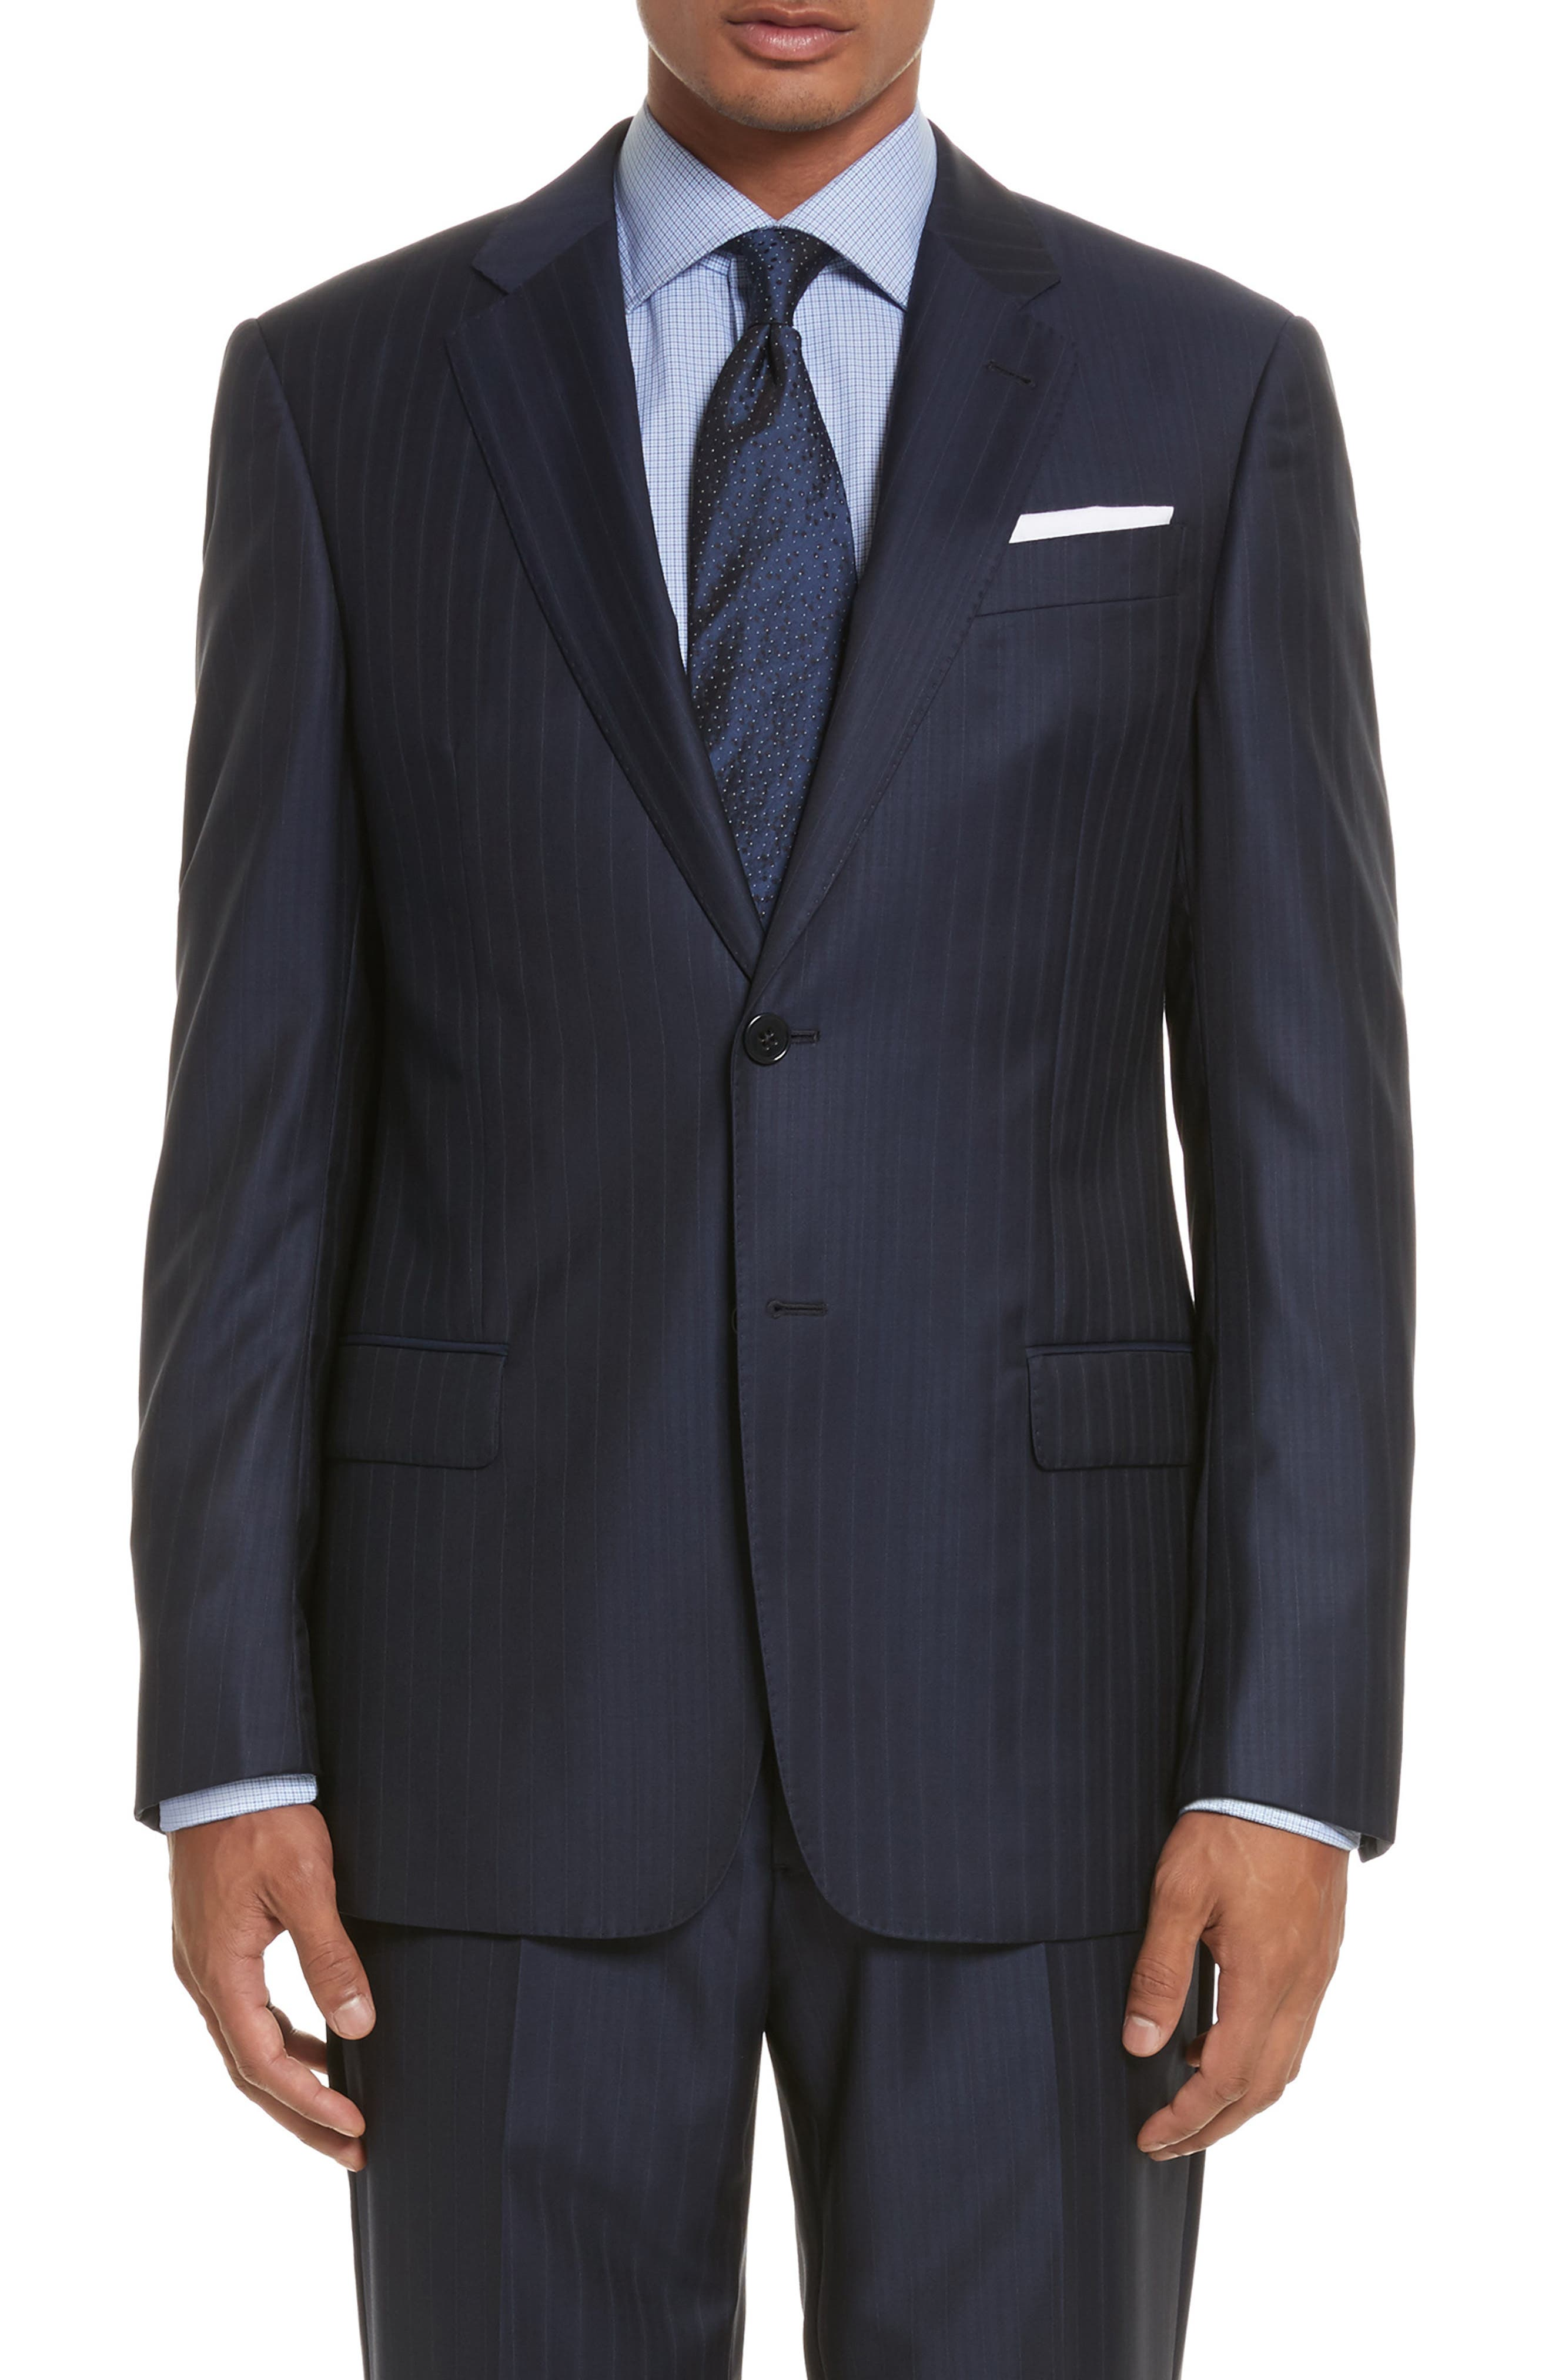 G-Line Trim Fit Stripe Wool Suit,                             Alternate thumbnail 5, color,                             433